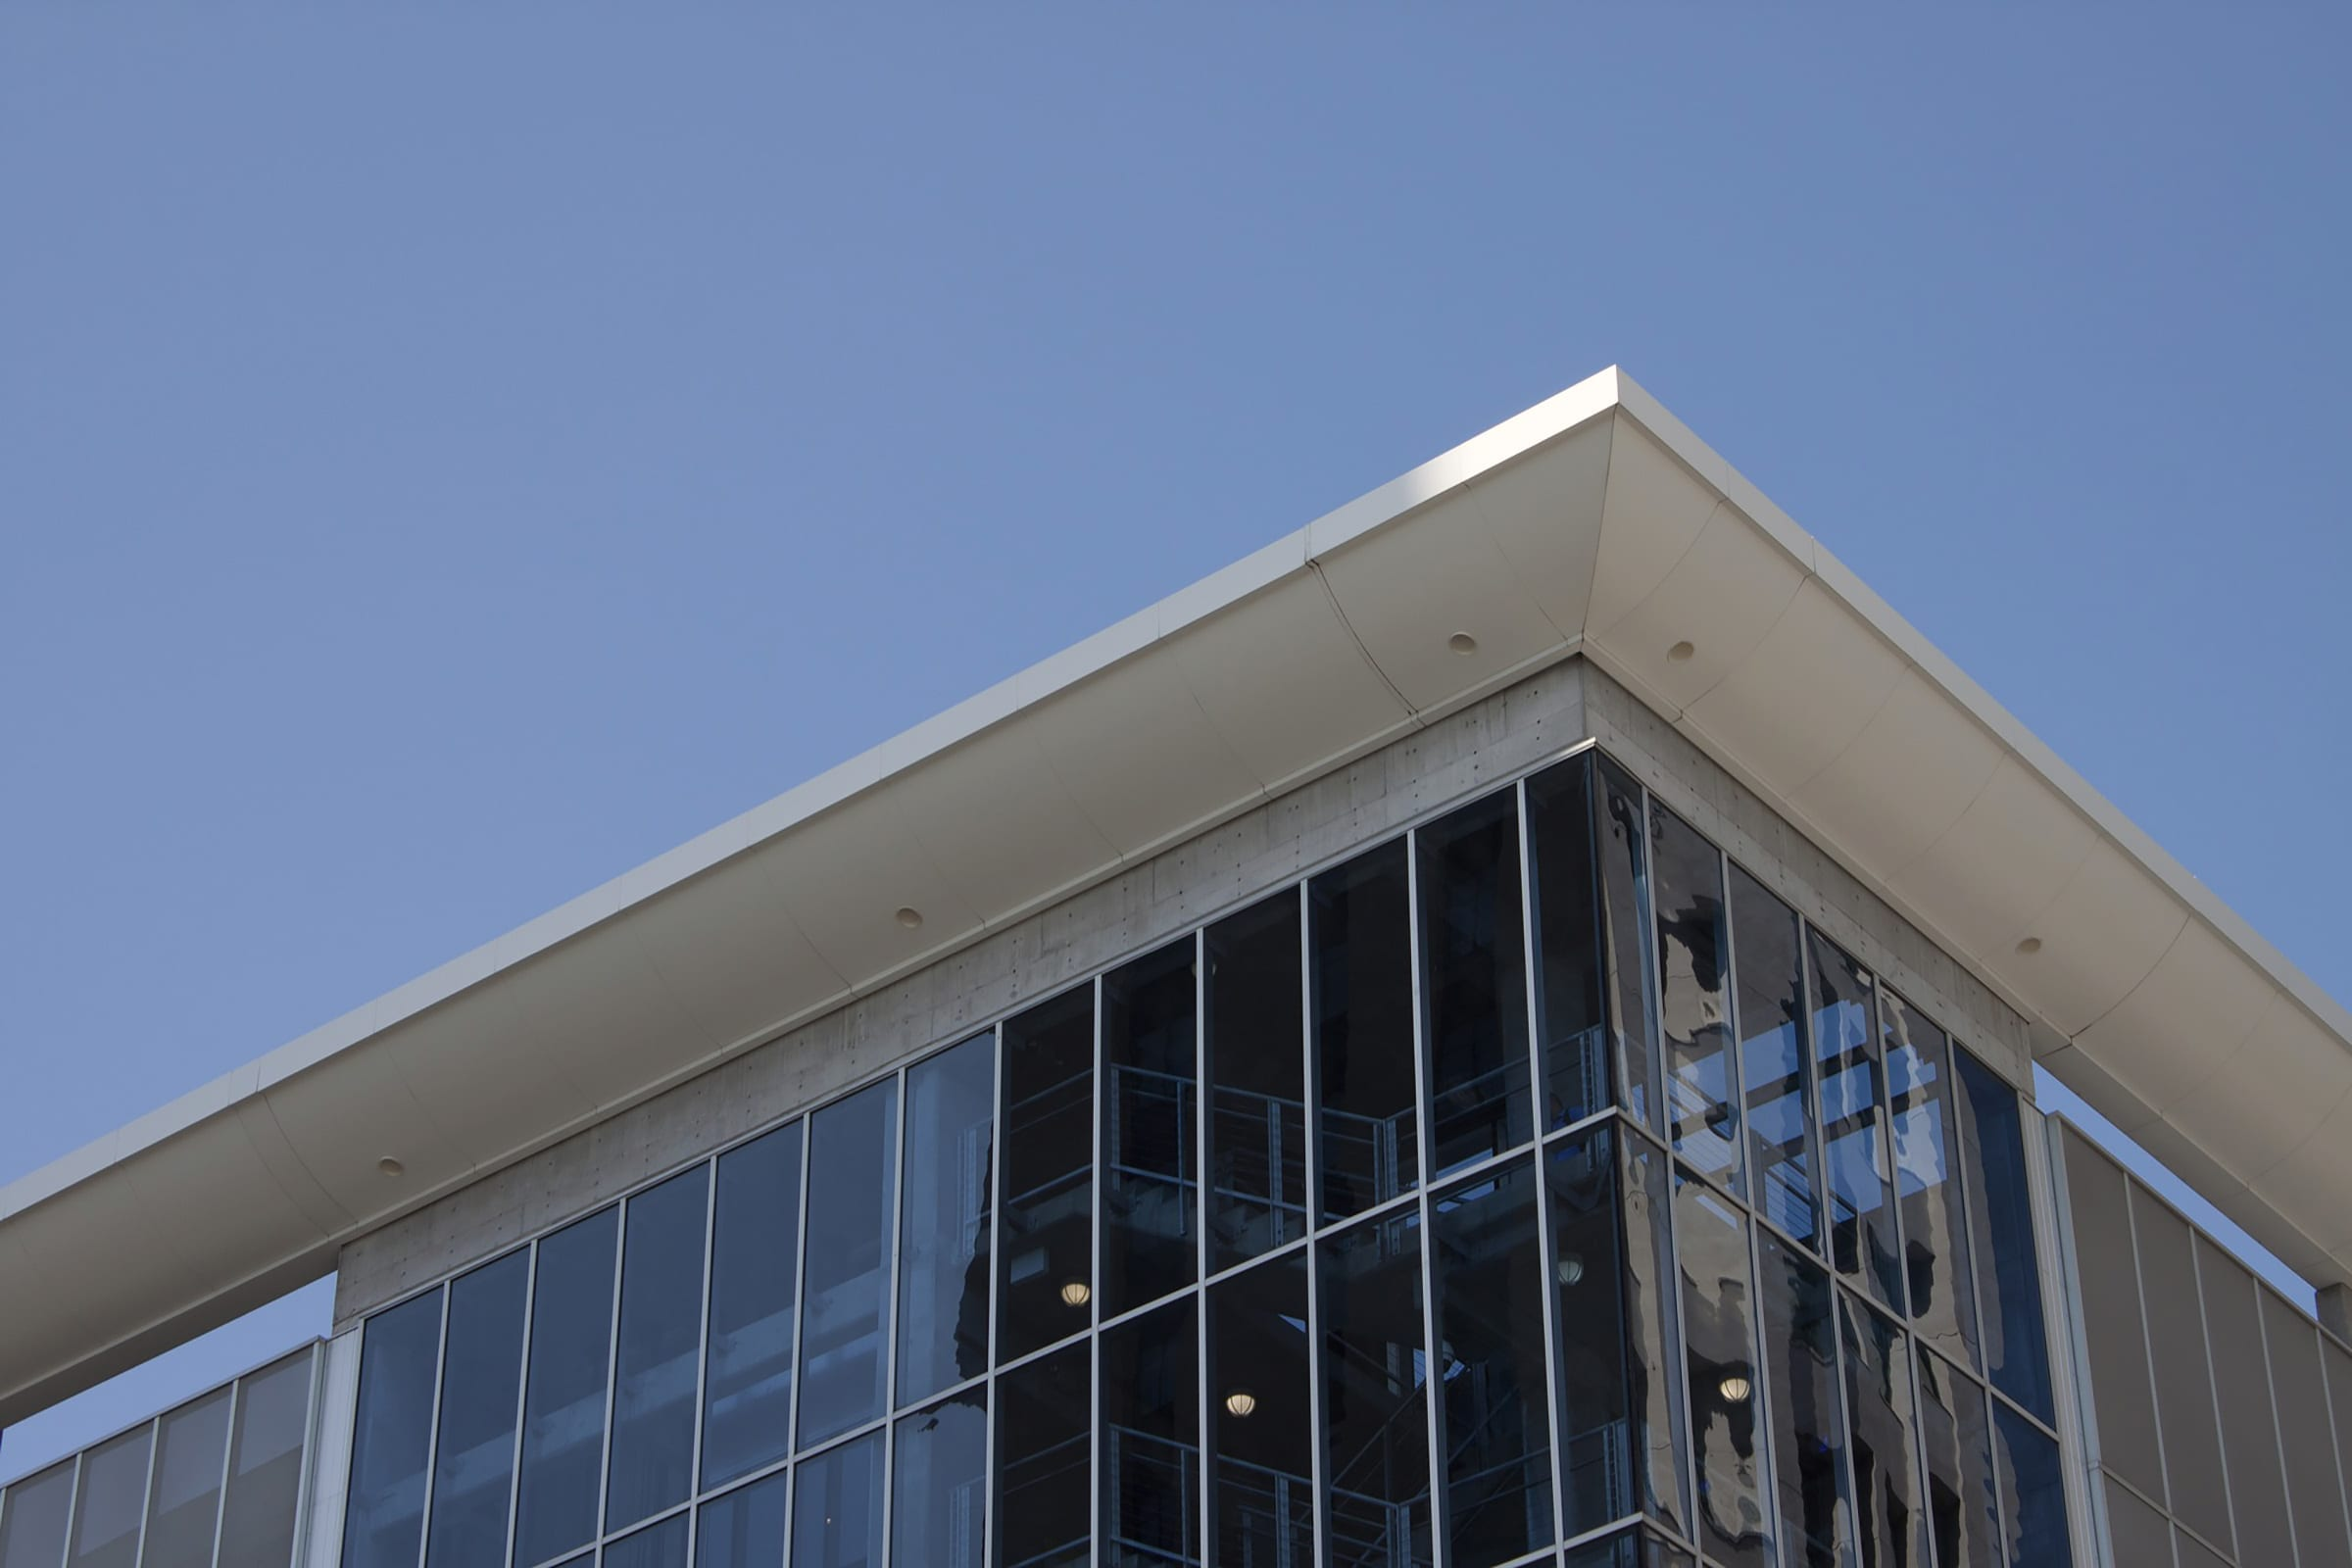 Rooftop awning system in Kansas City.